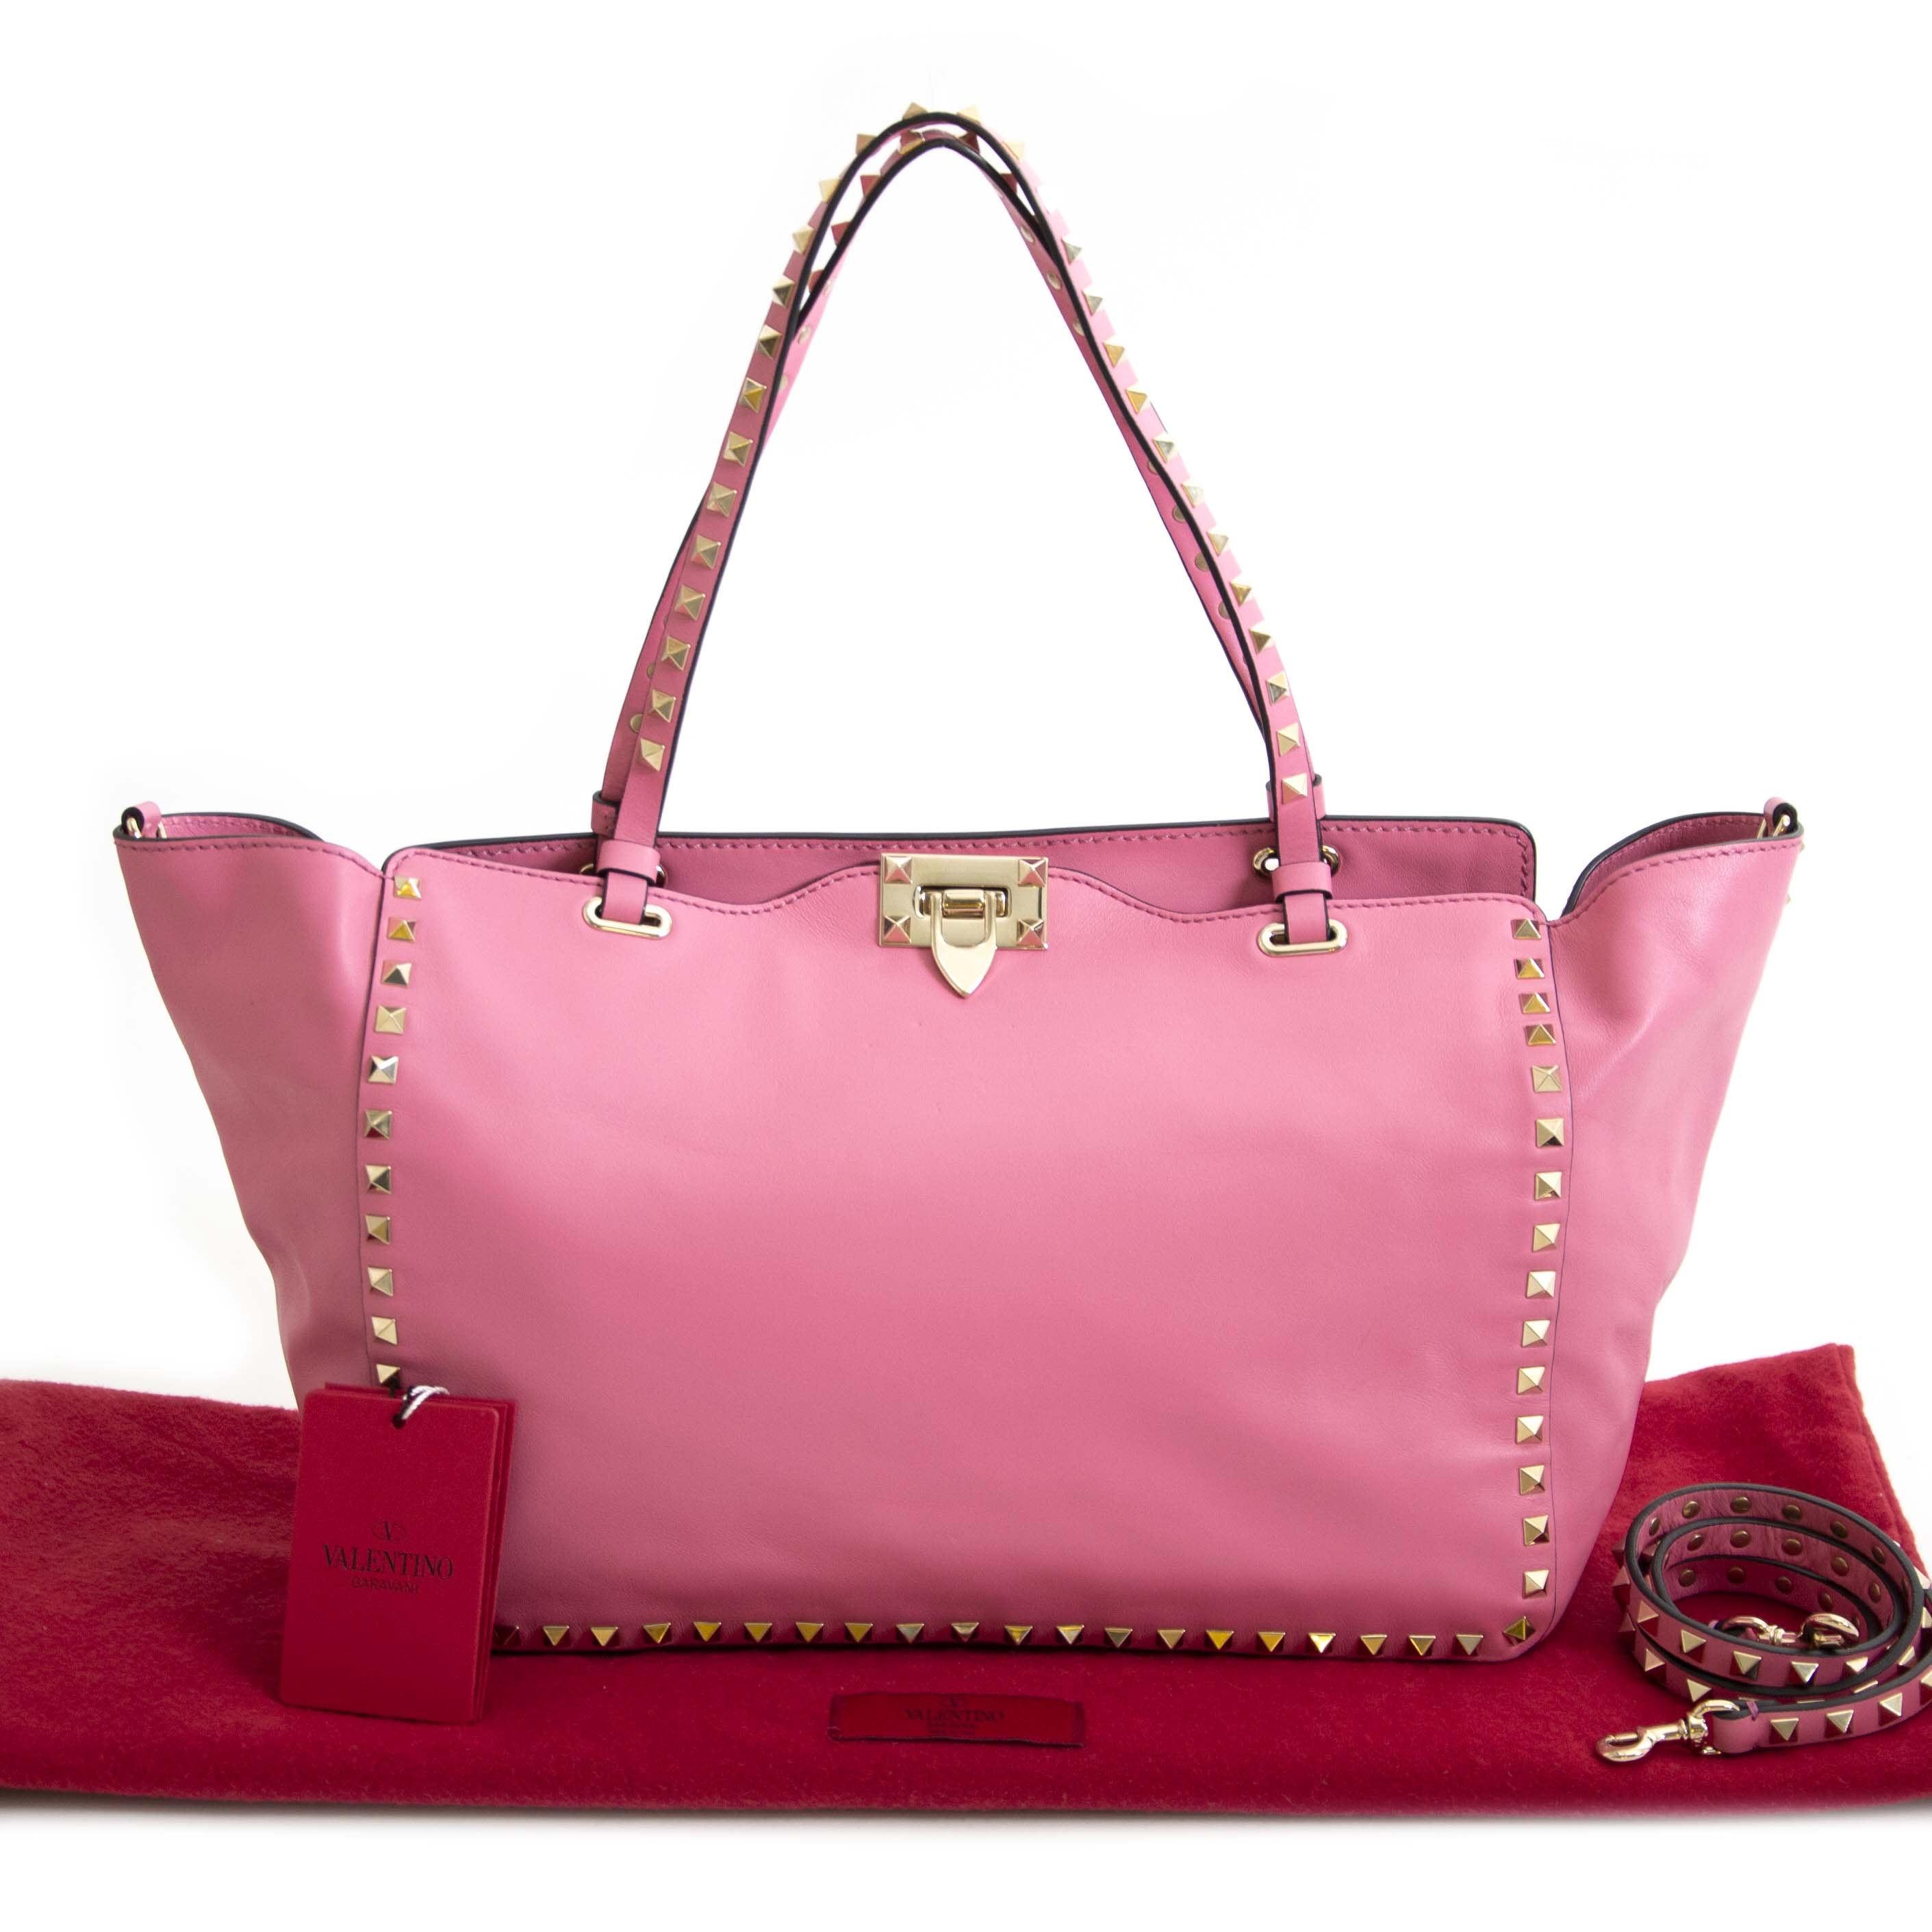 Valentino Pink Rockstud Medium Tote Bag Buy secondhand Valentino bags at Labellov. Safe online shopping at a fair price. Koop tweedehands Valentino handtassen bij Labellov. Veilig online winkelen voor een eerlijke prijs.